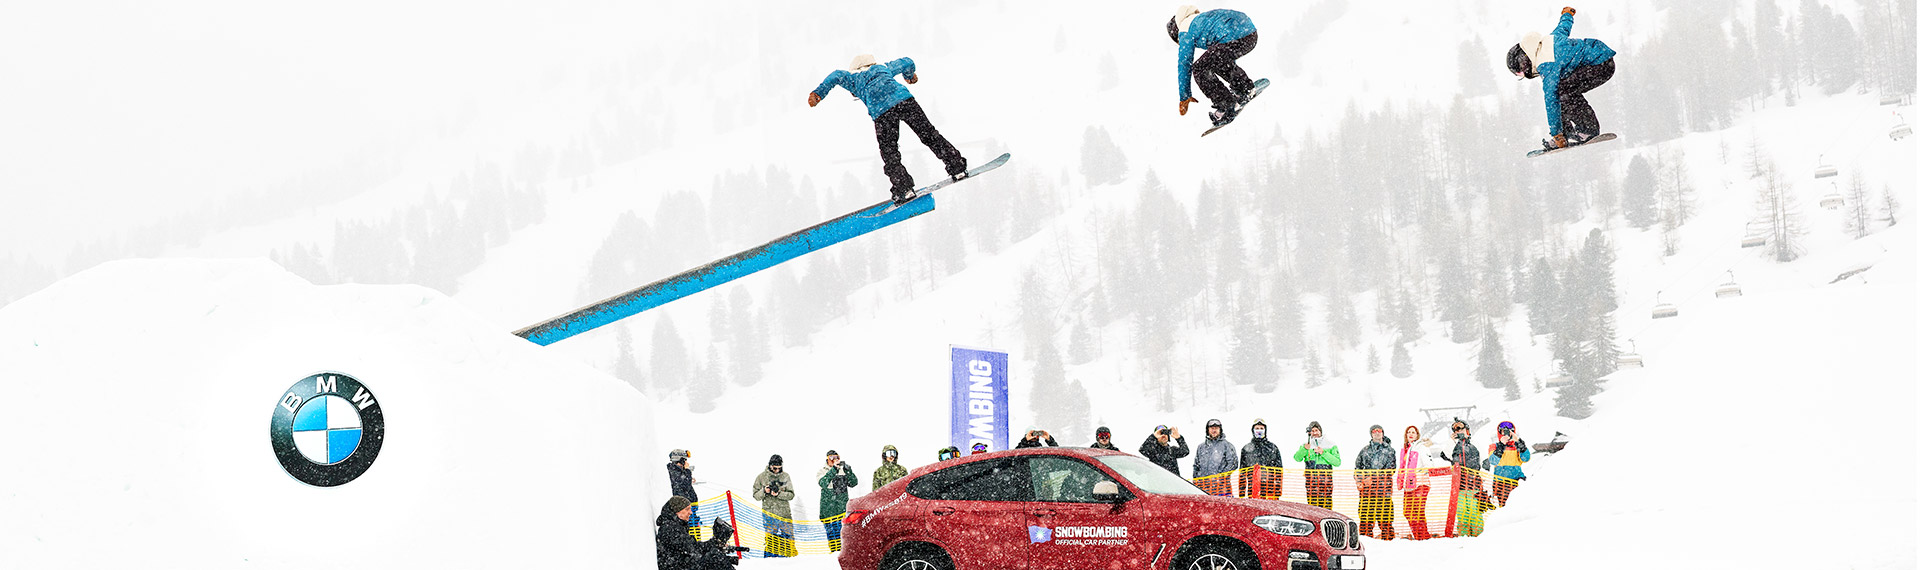 Snowboarder Billy Morgan jumping over the BMW X4.